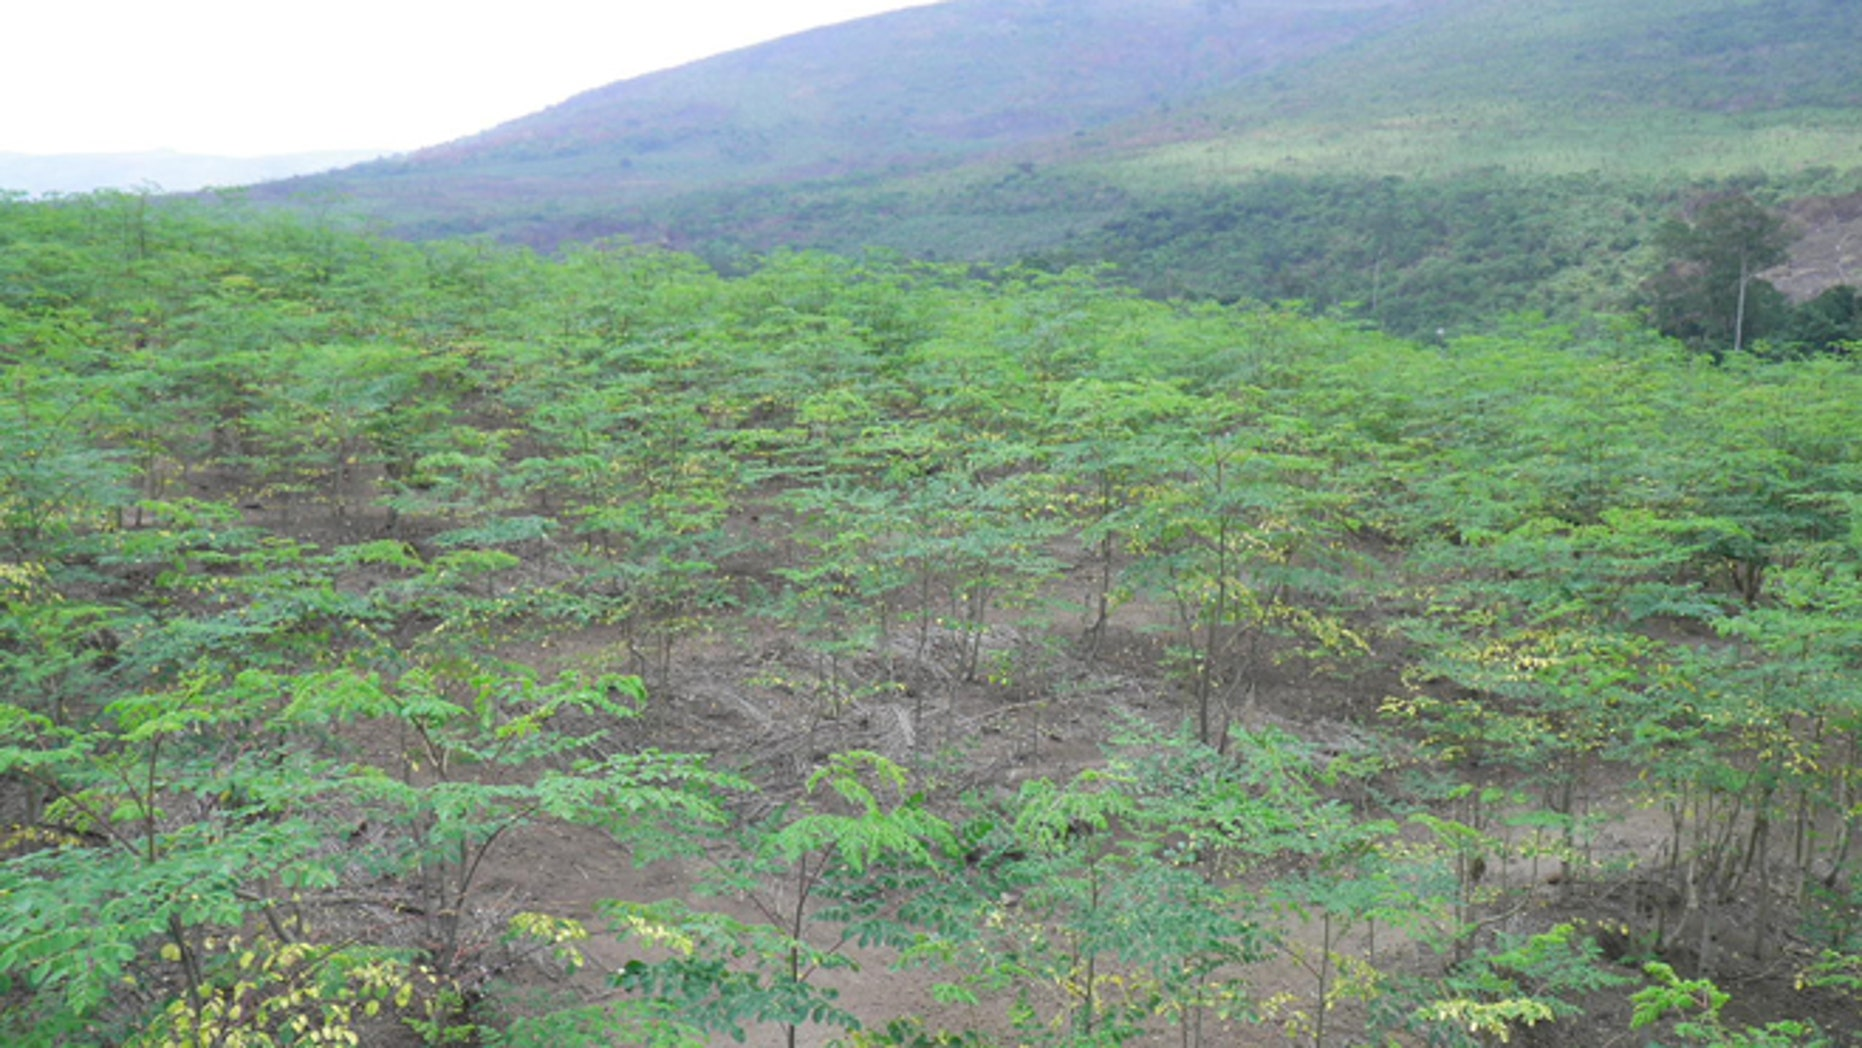 A plantation of young moringa trees in Congo.